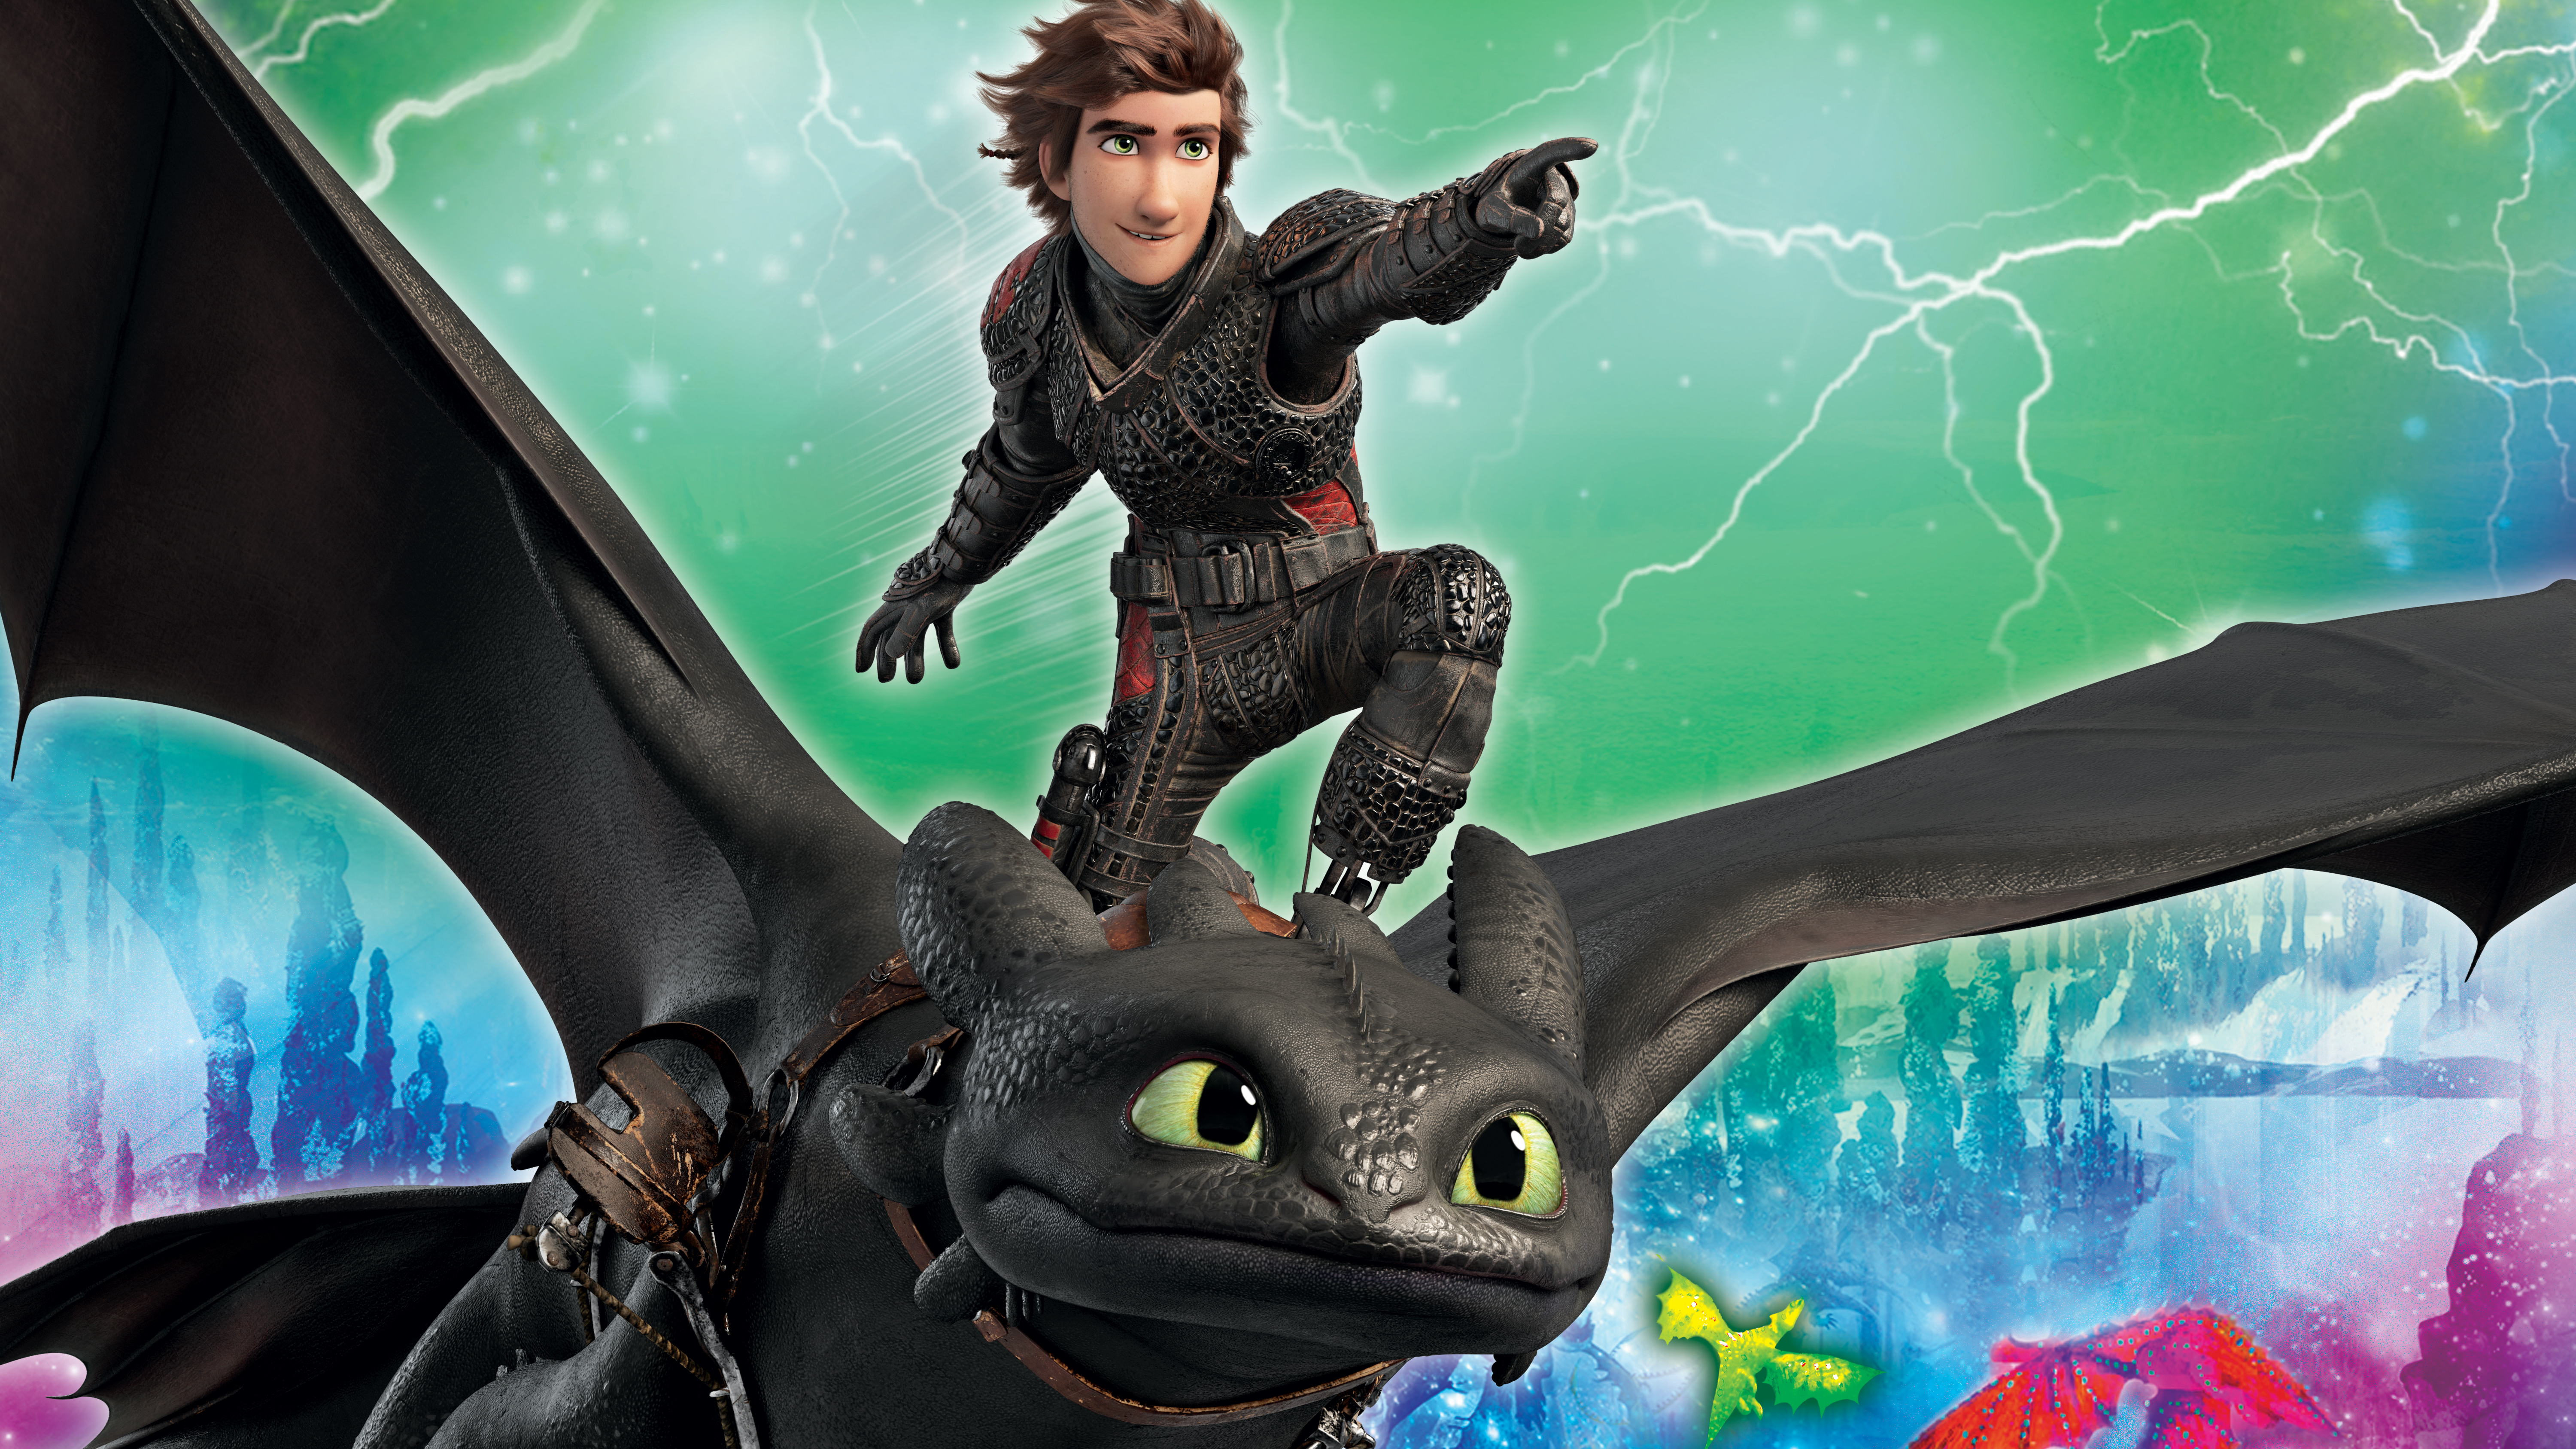 How to train your dragon 5k hd movies 4k wallpapers - How to train your dragon hd download ...